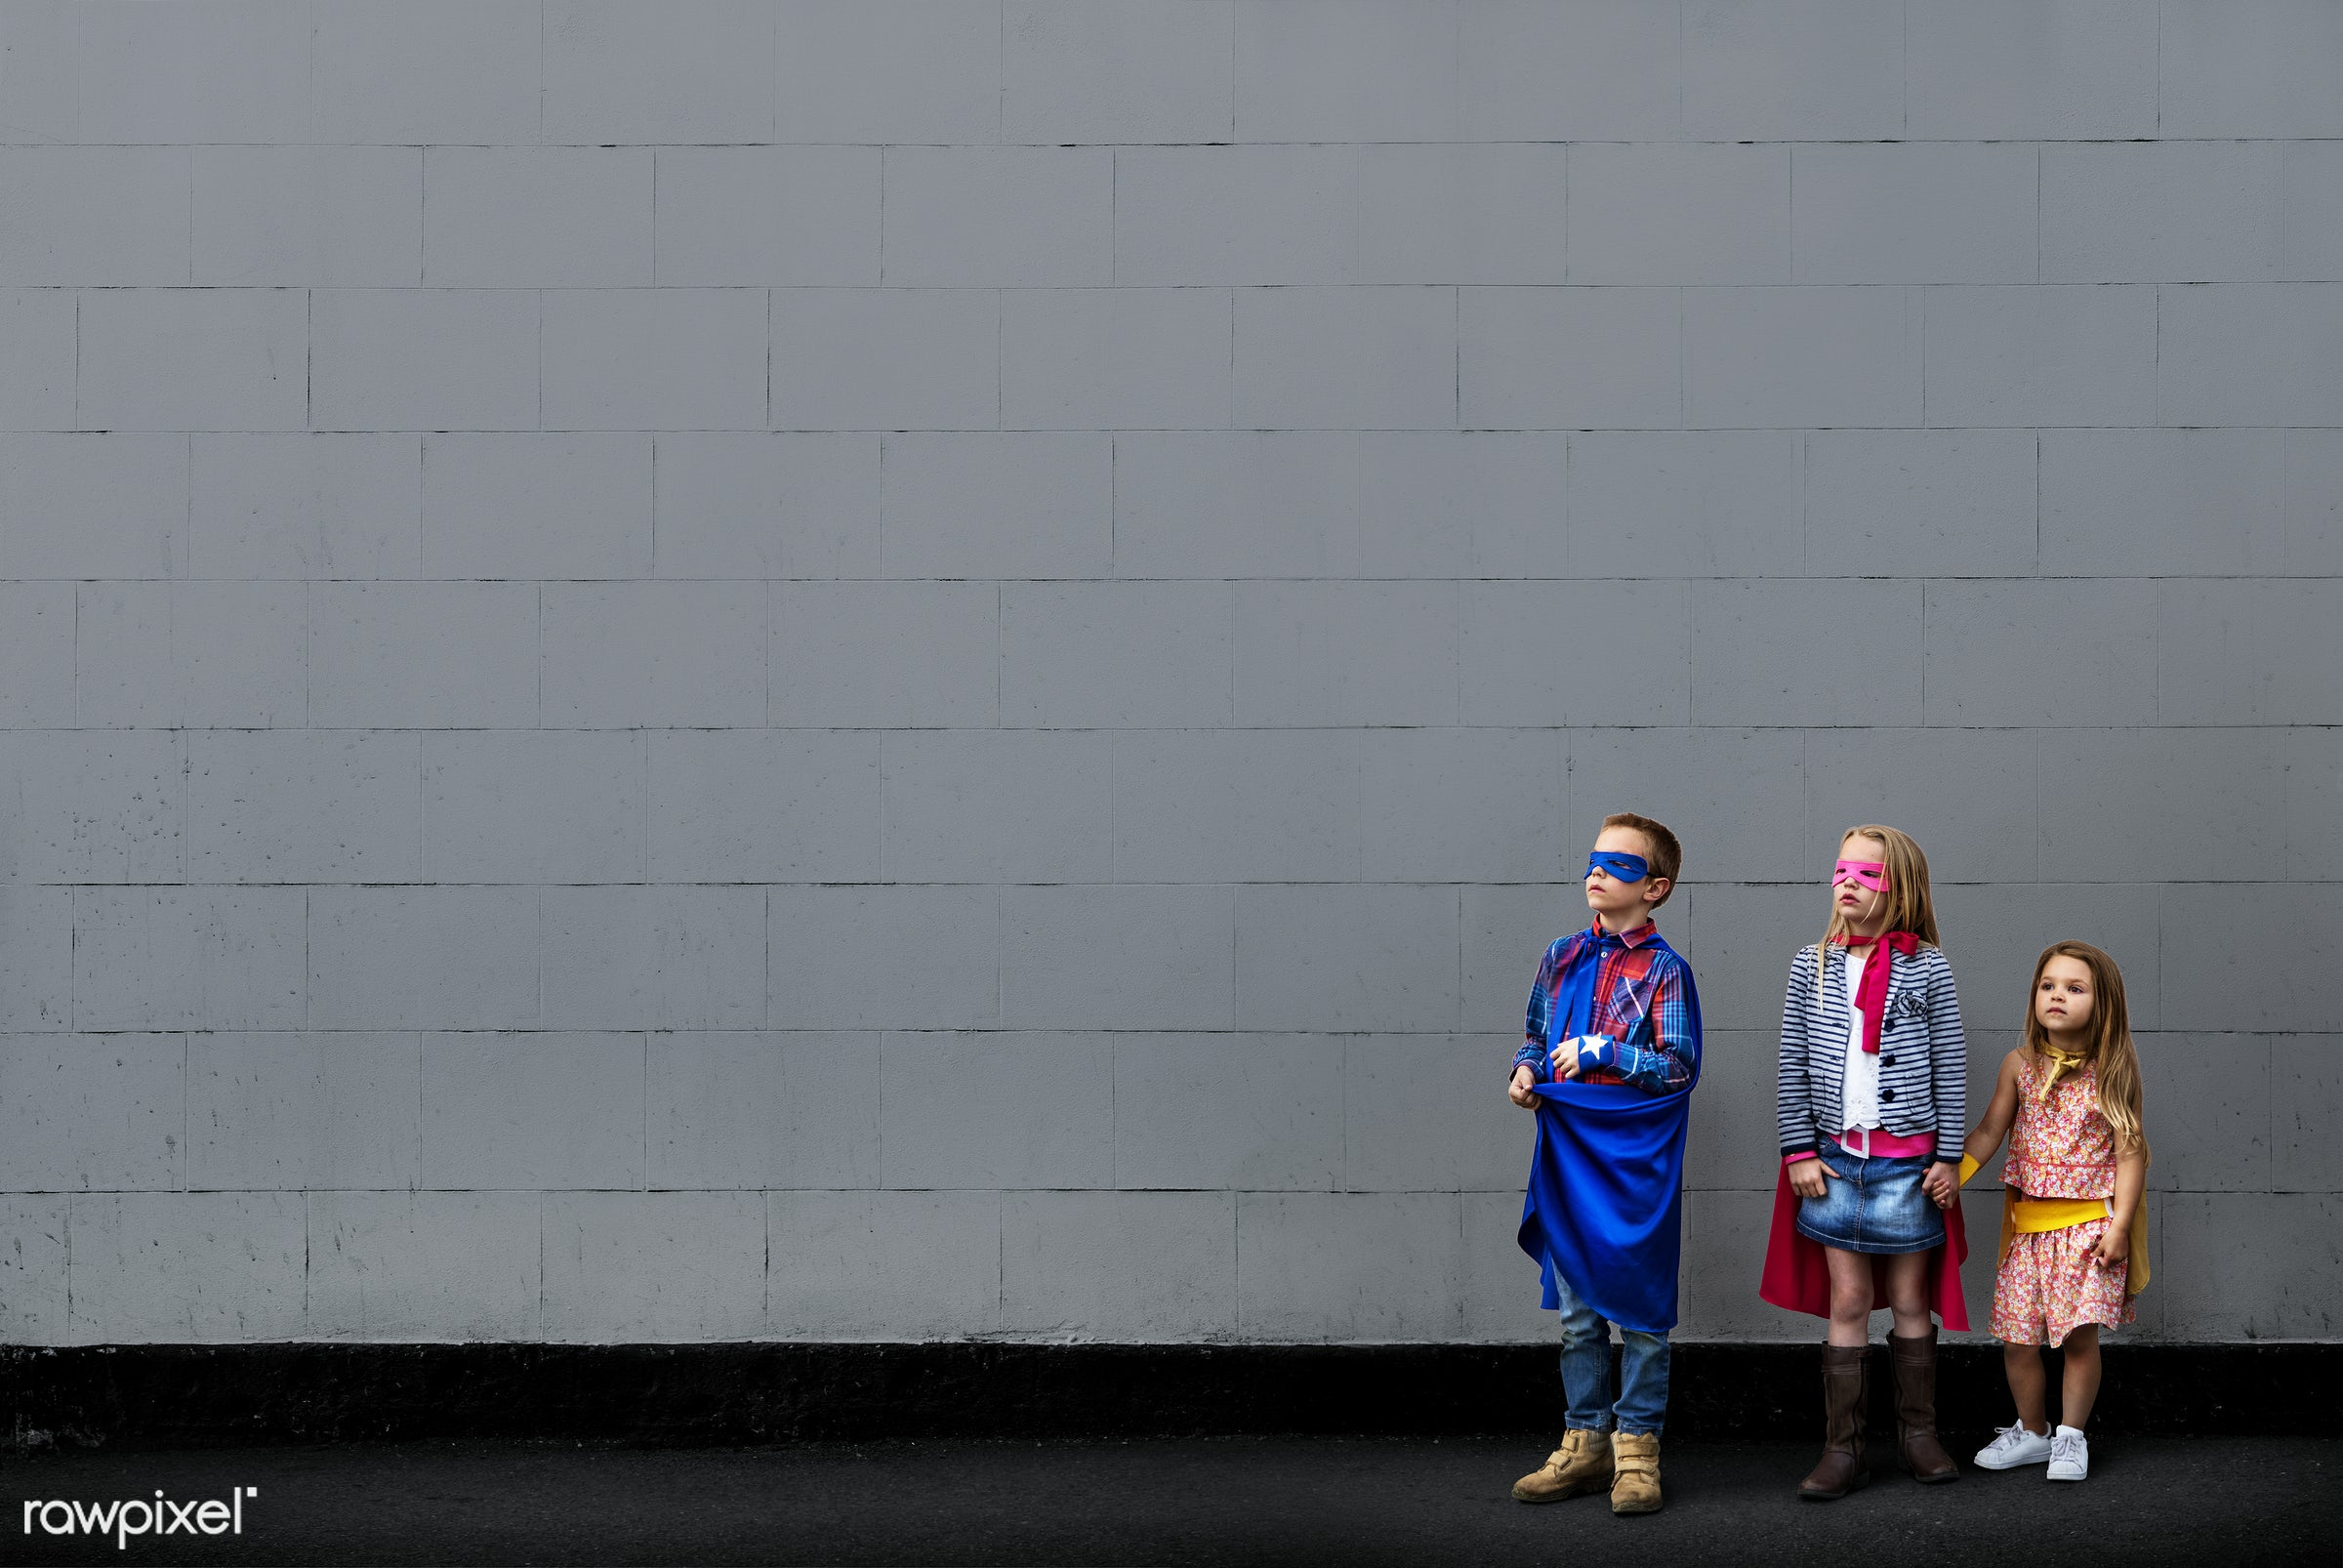 power, activity, aspirations, boy, brave, brick wall, brother, building, cheerful, child, childhood, children, color,...